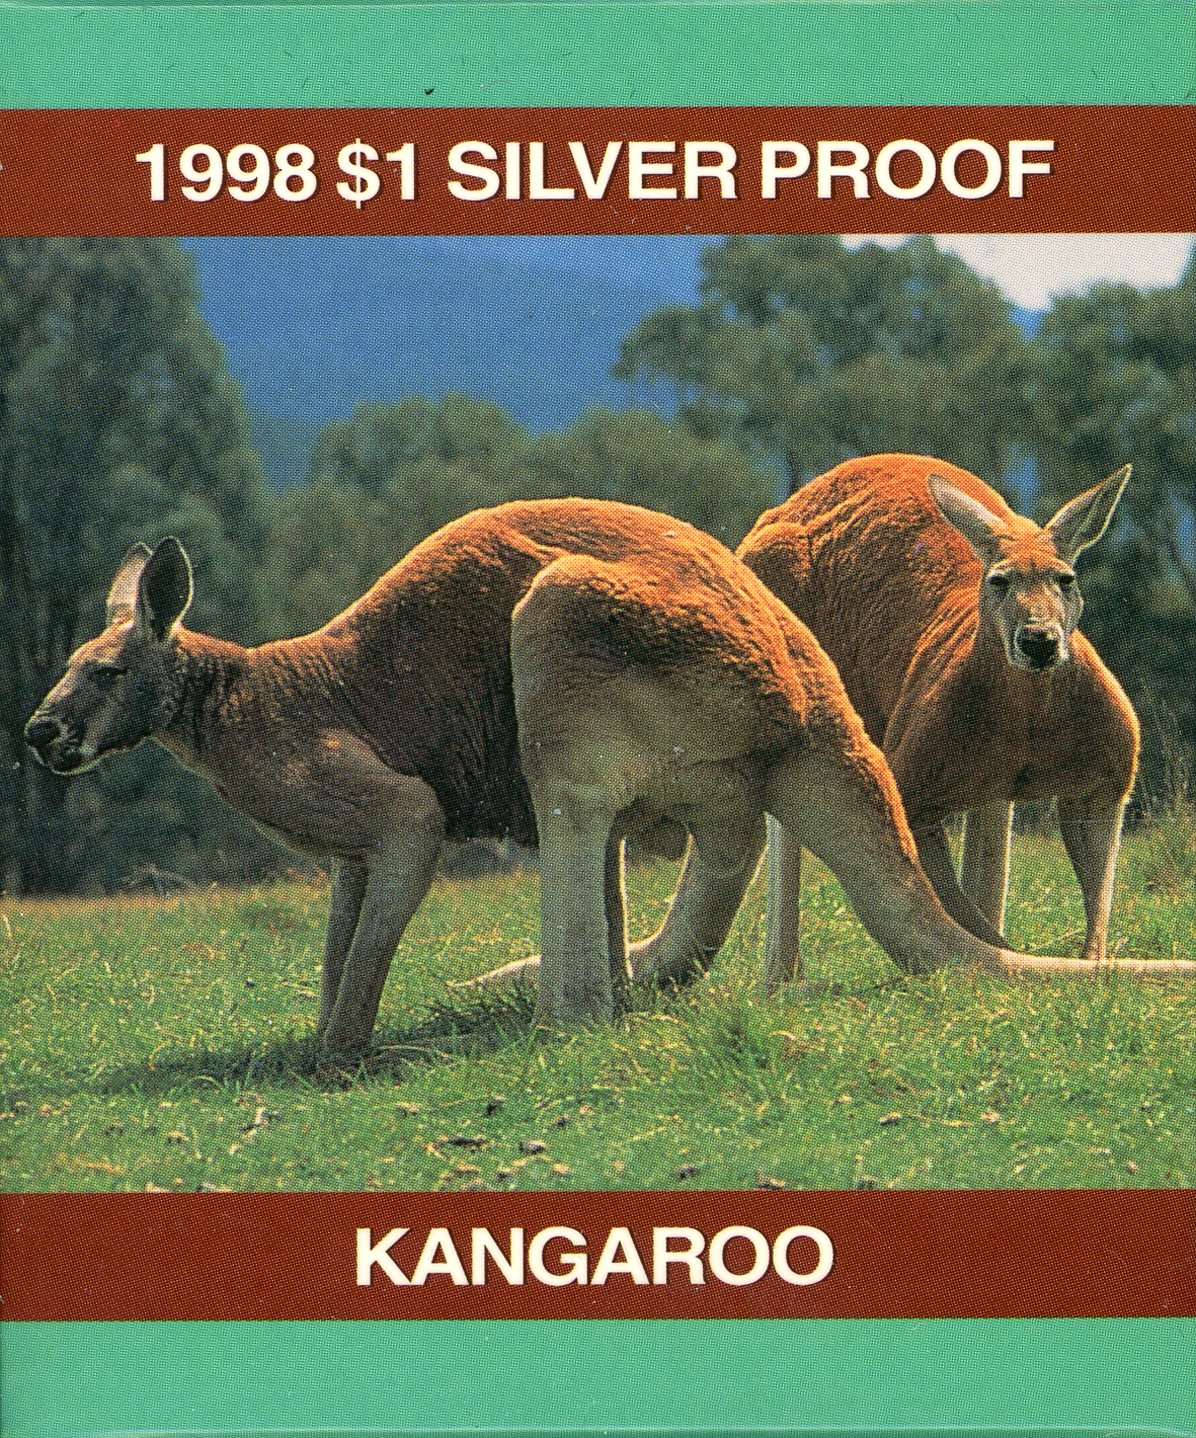 Thumbnail for 1998 $1 1oz Silver Kangaroo Proof Coin